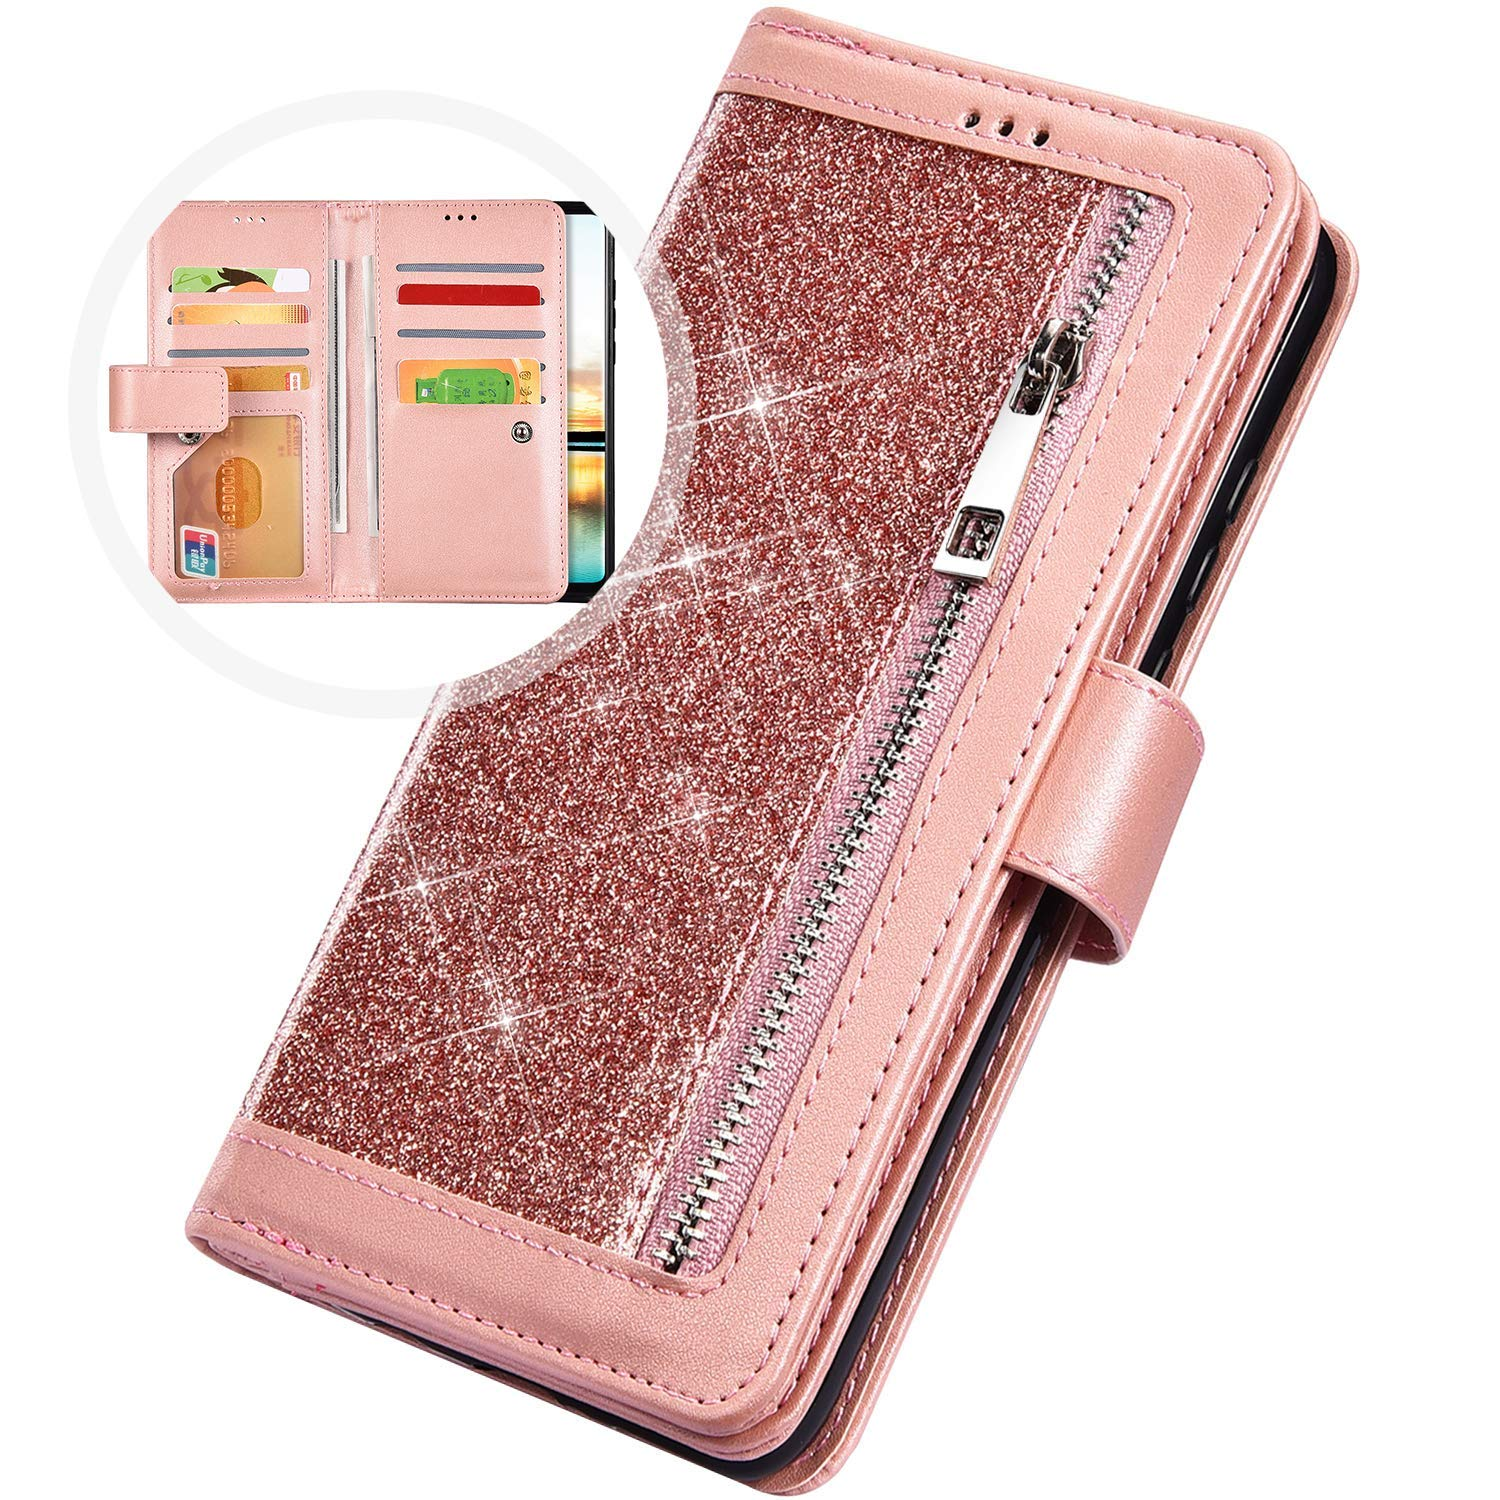 PHEZEN Case for Samsung Galaxy J3 2017 Wallet Case,Sparkle Bling Glitter PU Leather Magnetic Flip Folio Protective Case Multi-Function 9 Credit Card Holders with Zipper Coins Purse Cover,Rose Gold by PHEZEN